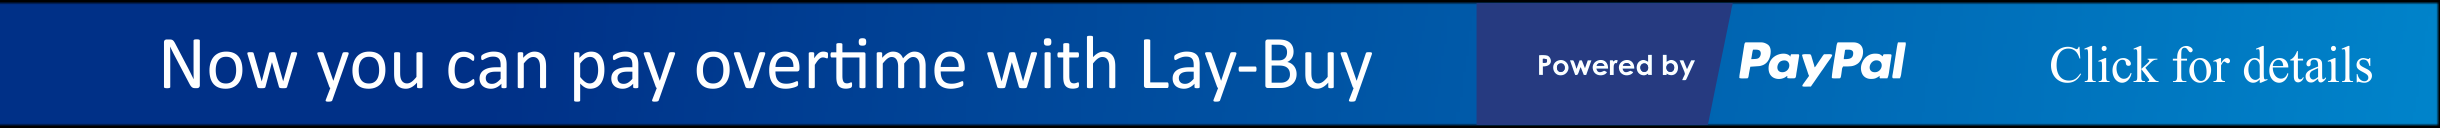 LayBuy, How it works